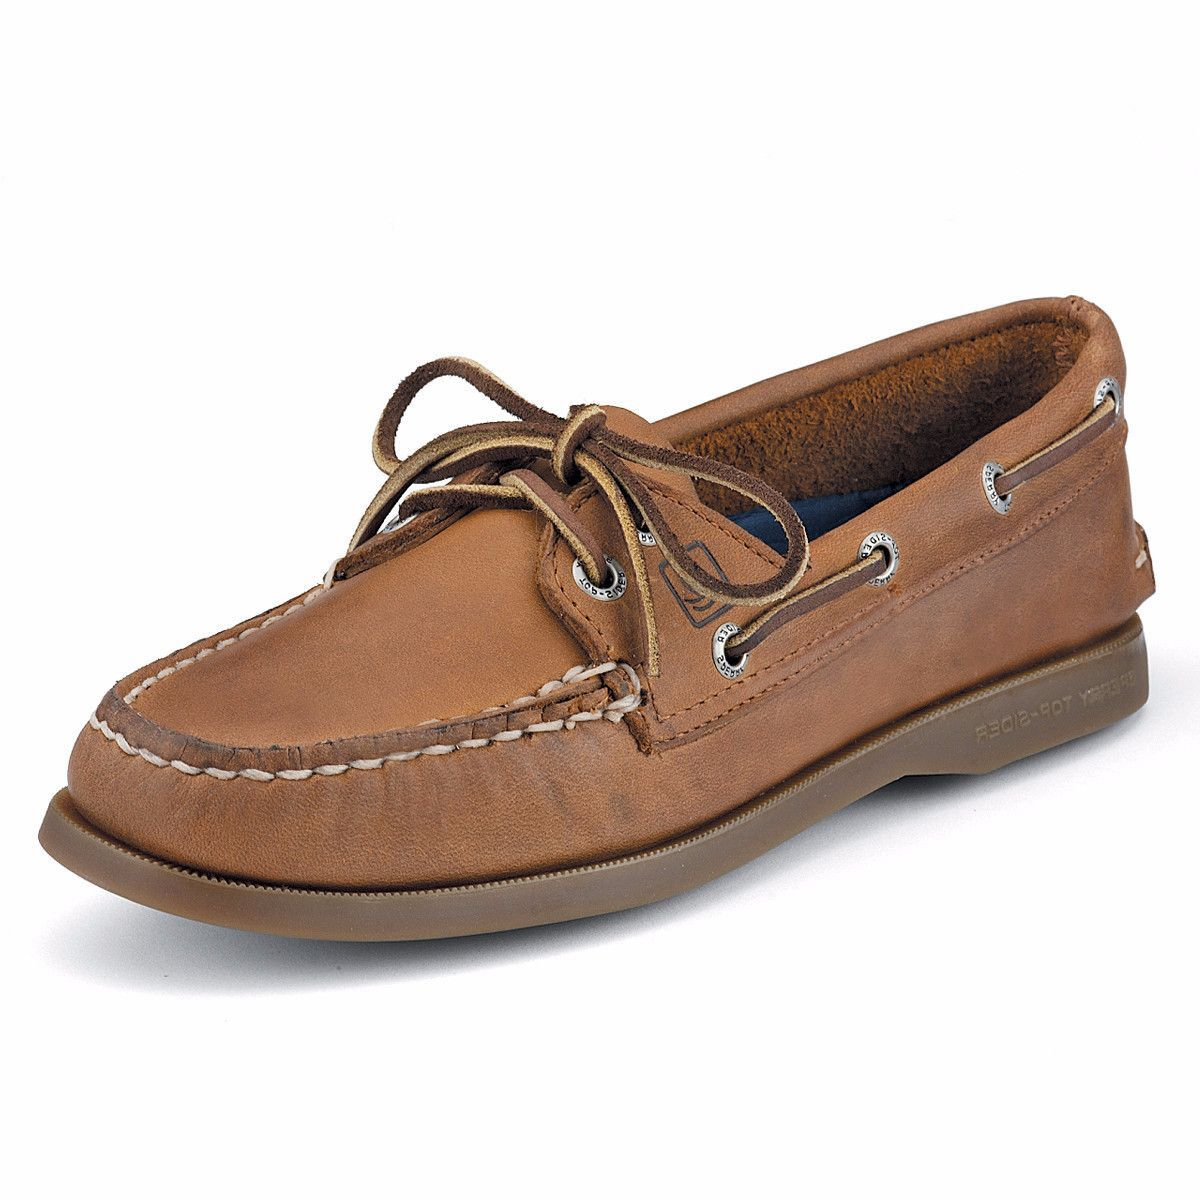 A/O 2-Eye Boat Shoes